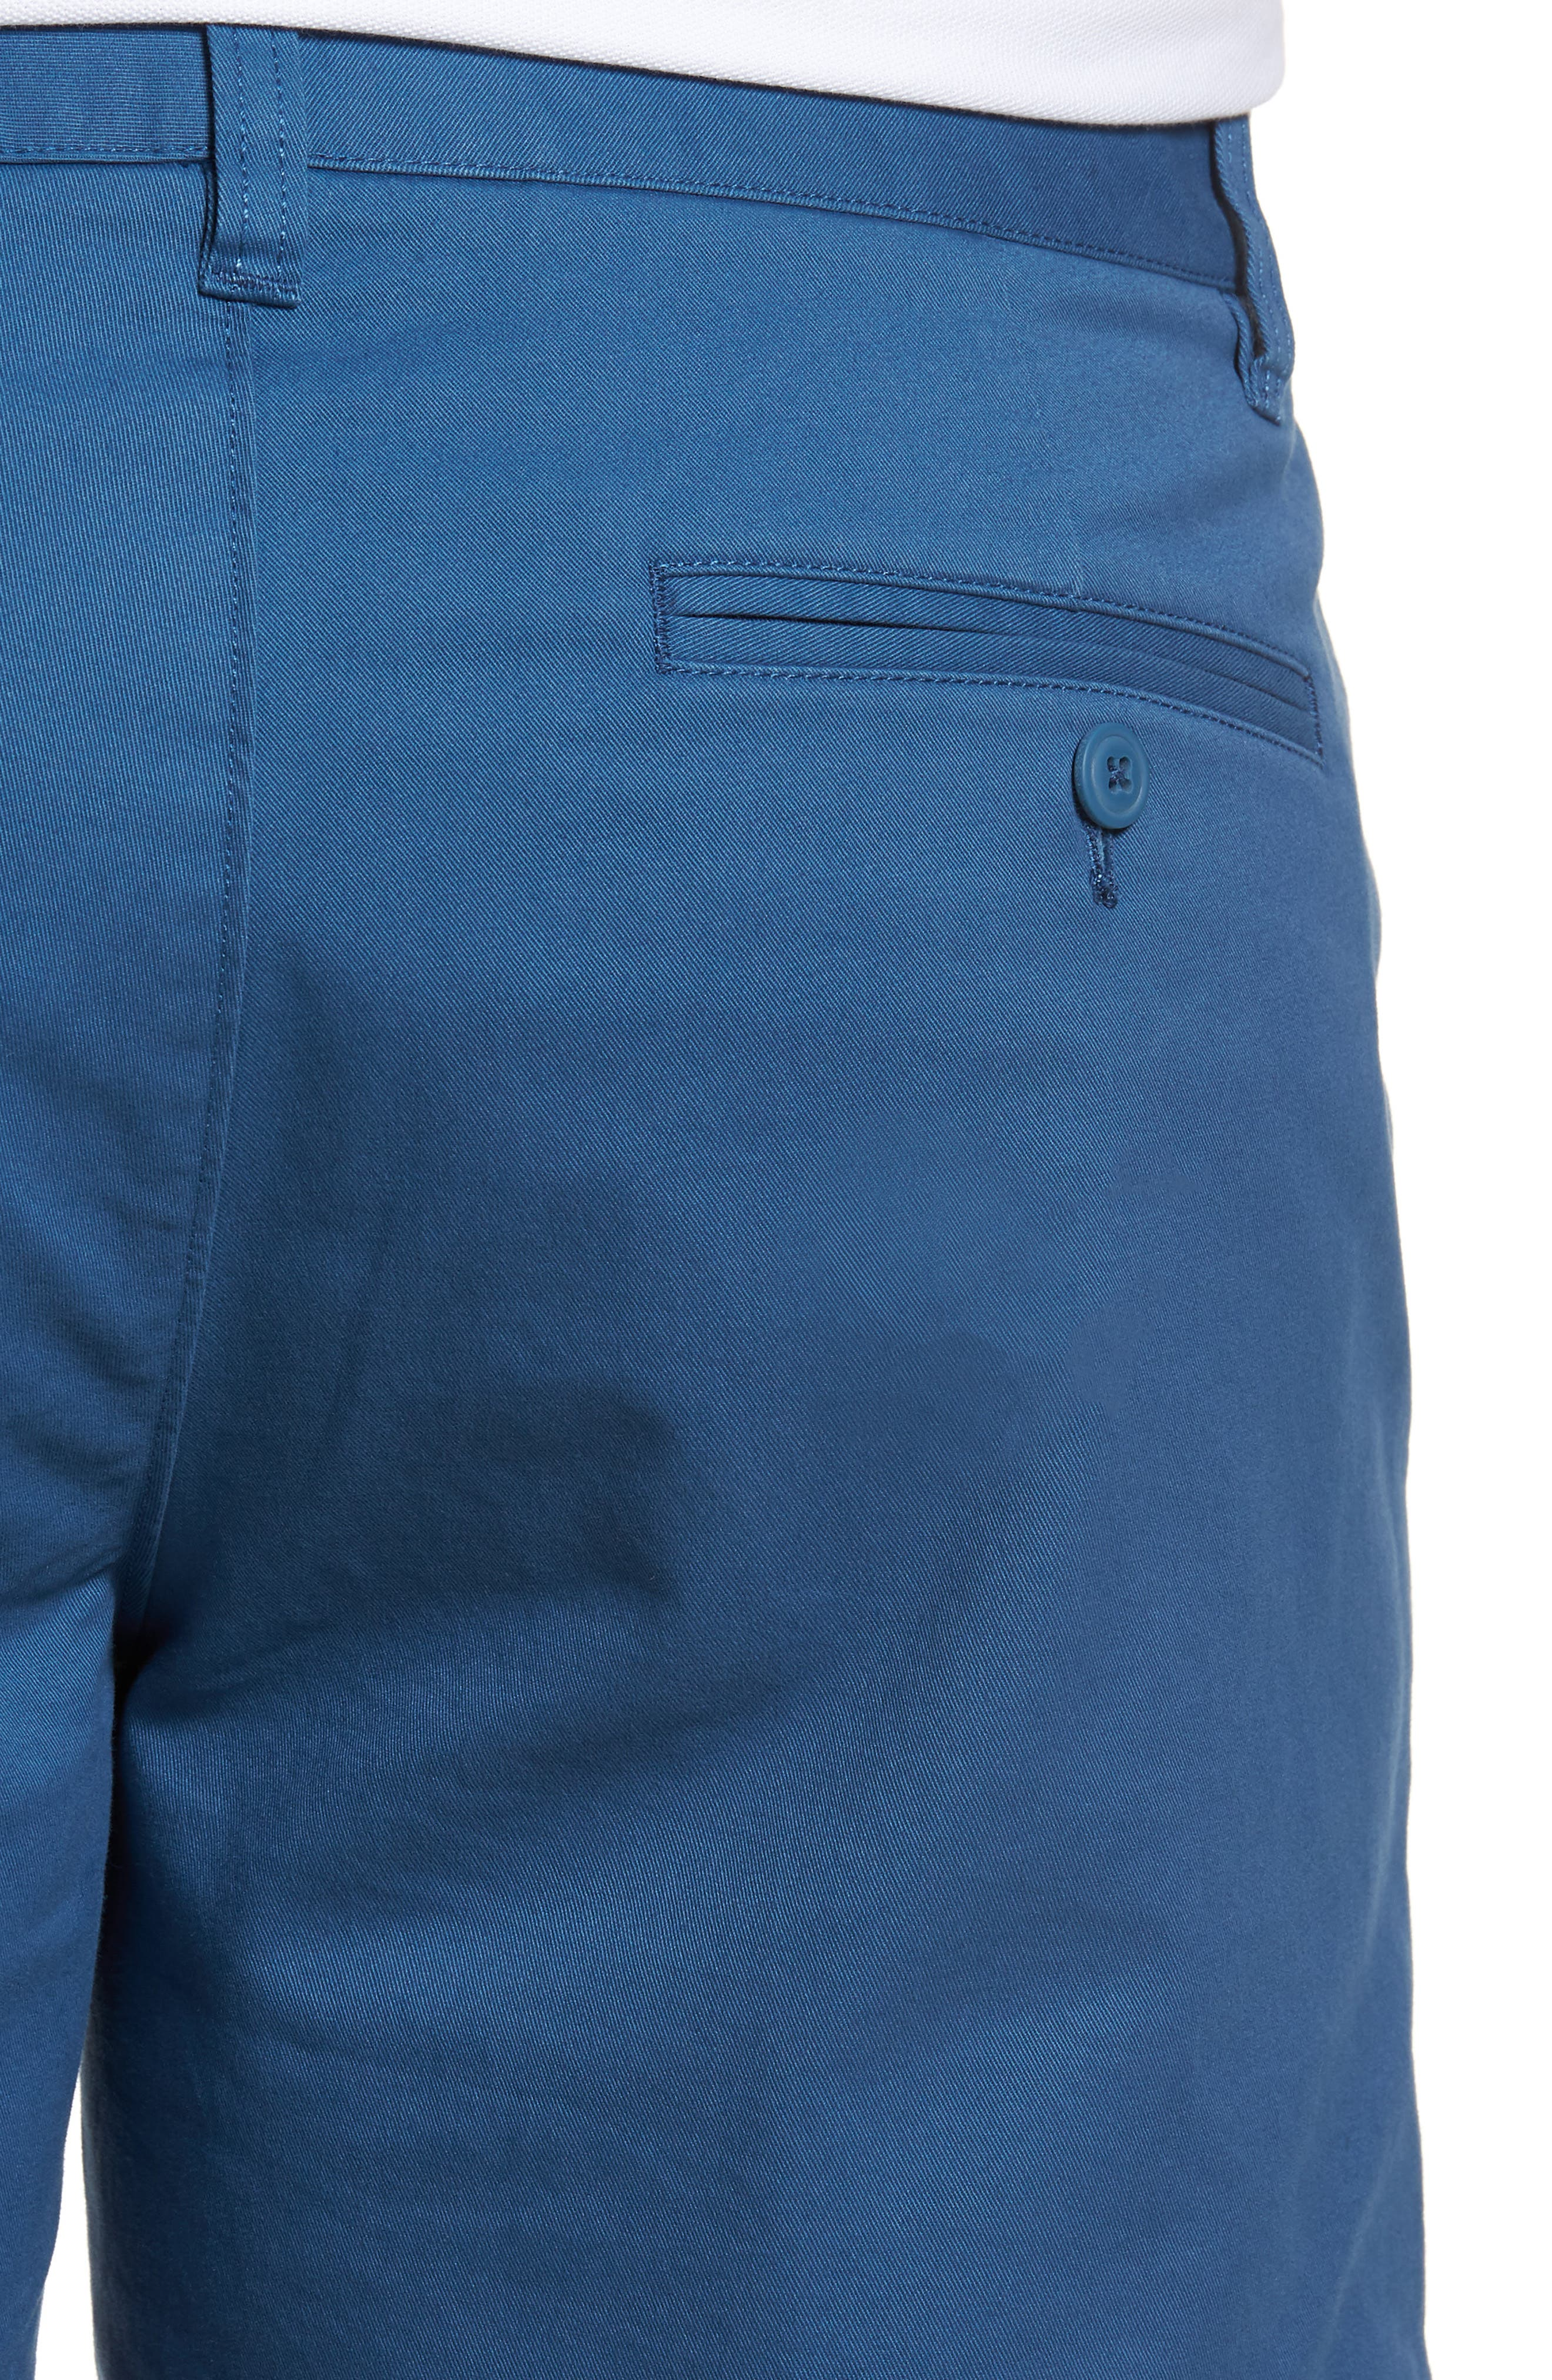 Stretch Washed Chino 5-Inch Shorts,                             Alternate thumbnail 122, color,